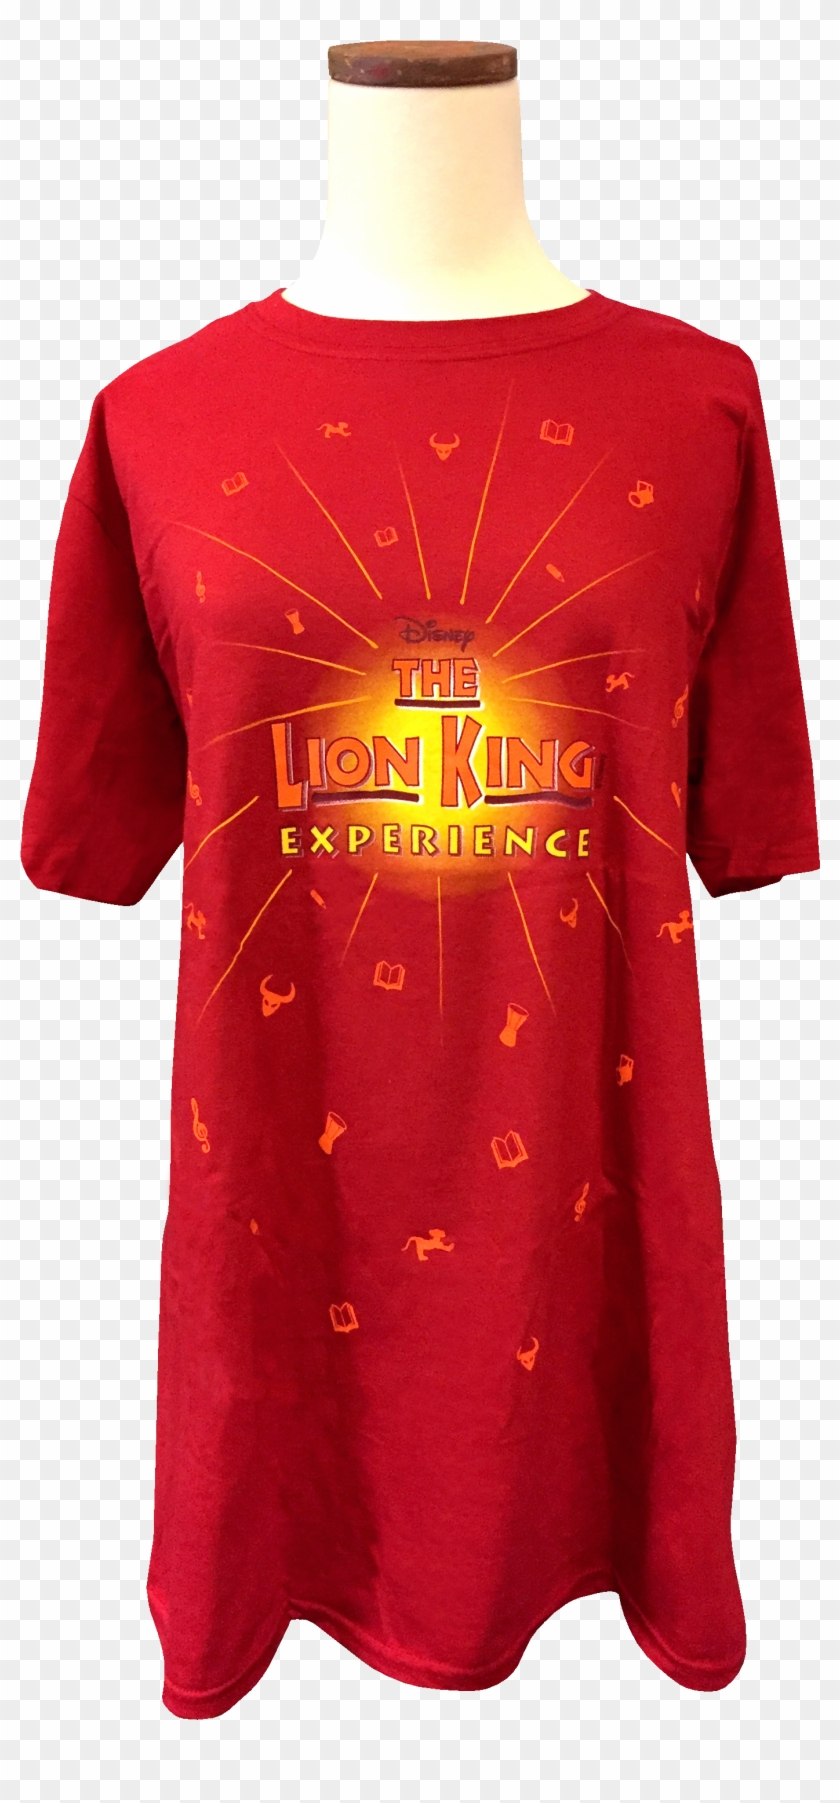 The Official Lion King Experience Logo T Shirt For - Active Shirt Clipart #1666061